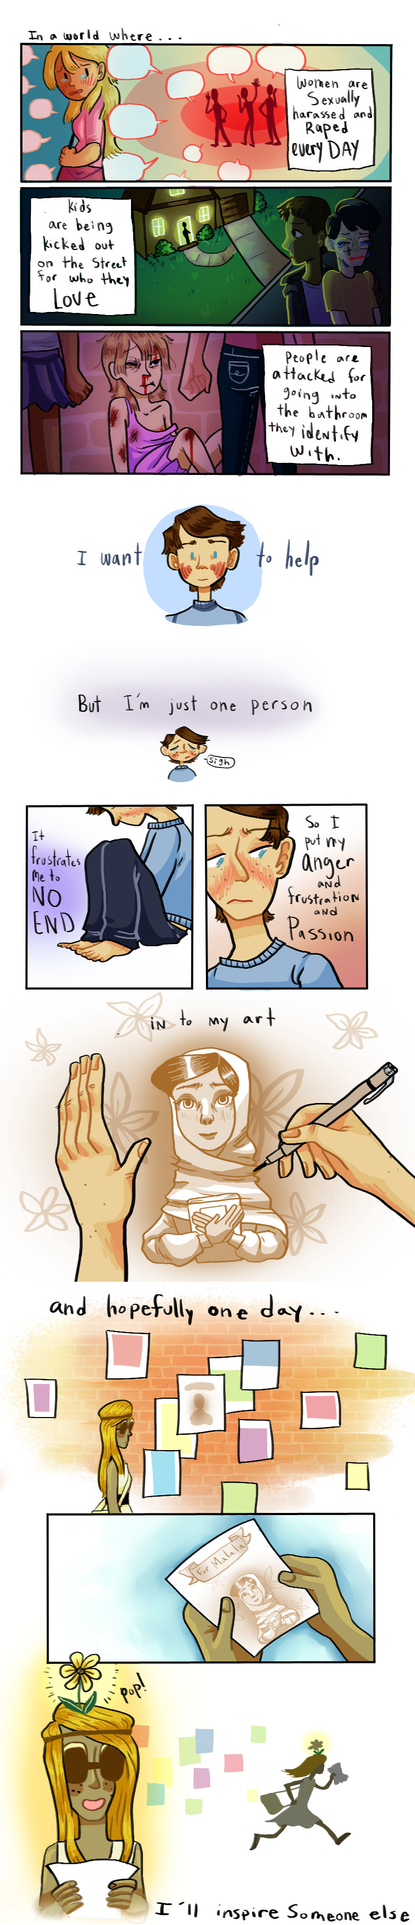 How my art could change the world by nina-chan5202